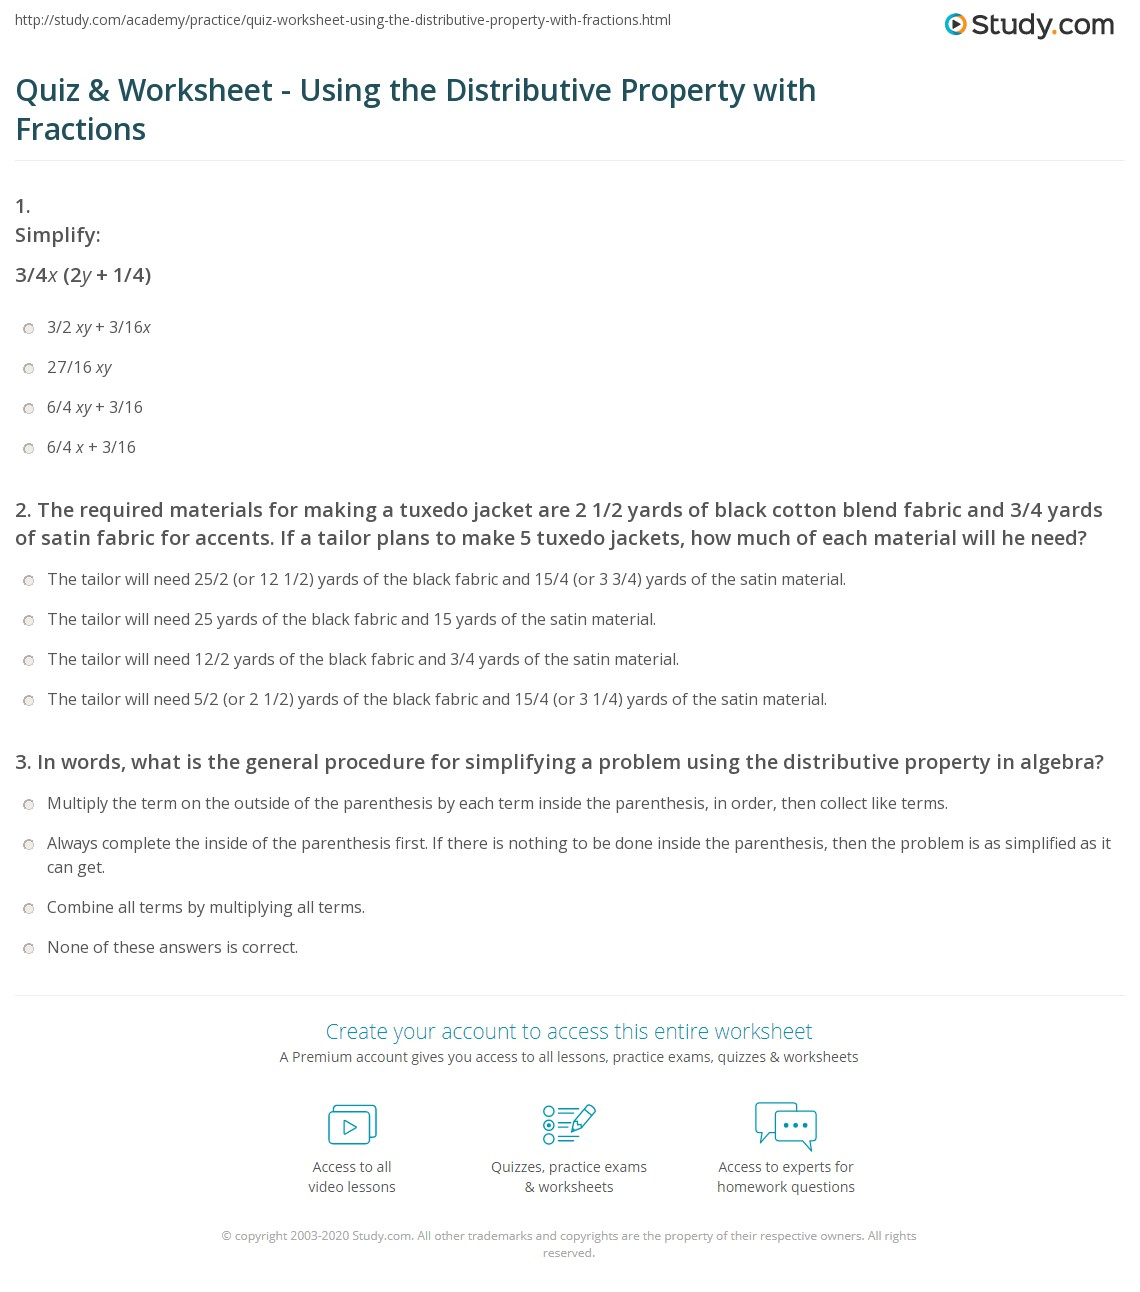 Worksheets  Quiz & Worksheet - Using the Distributive Property with Fracti